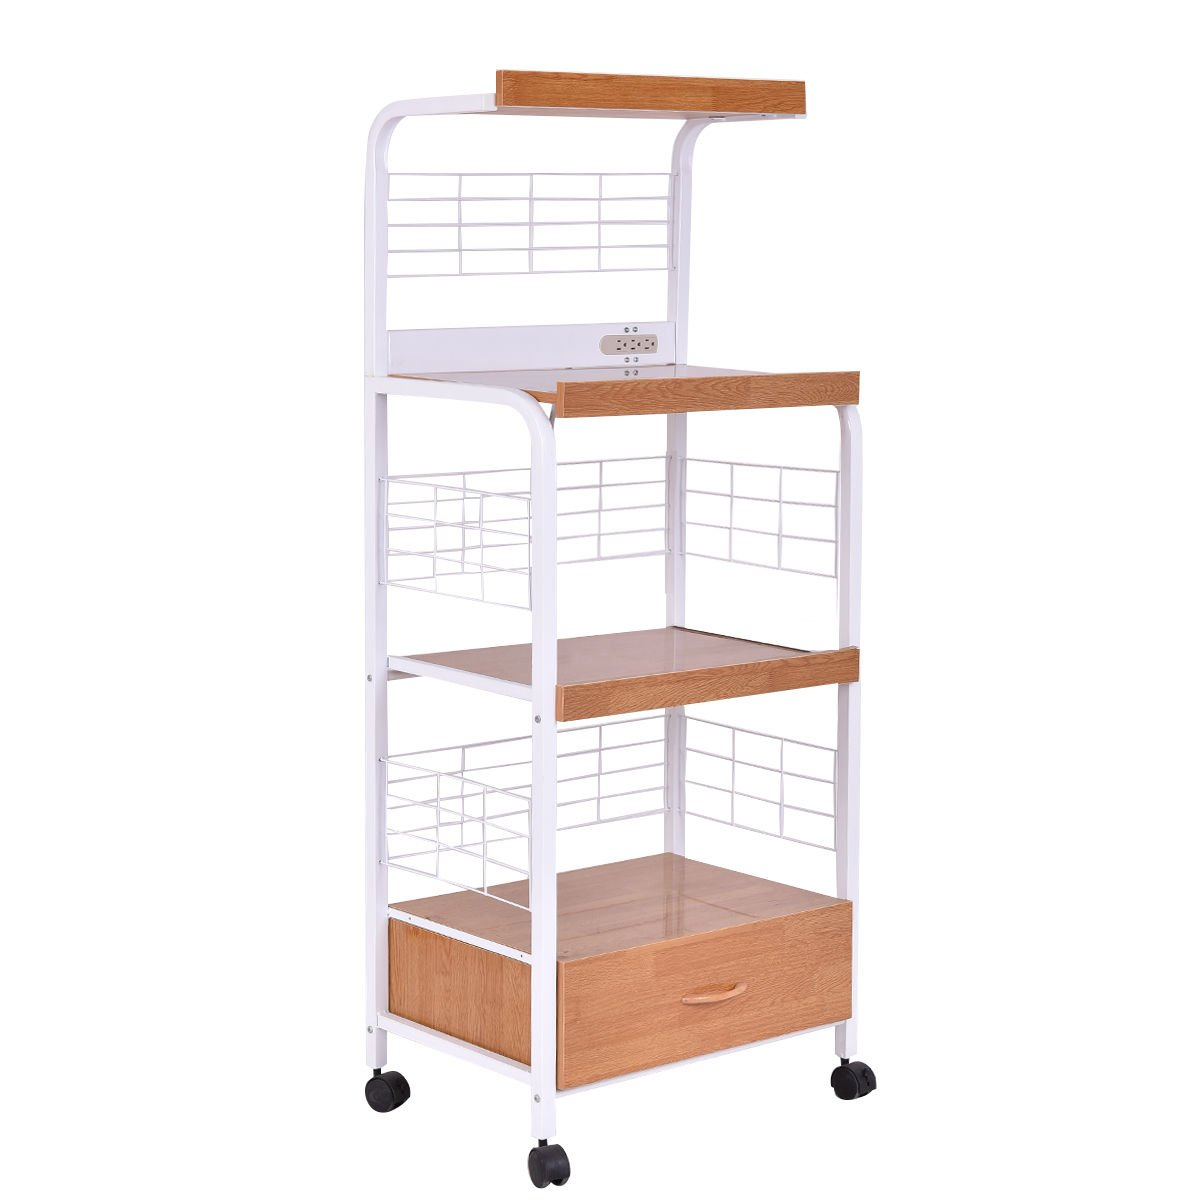 GJH One Bakers Rack Microwave Stand Rolling Kitchen Storage Cart w/Electric Outlet 62''